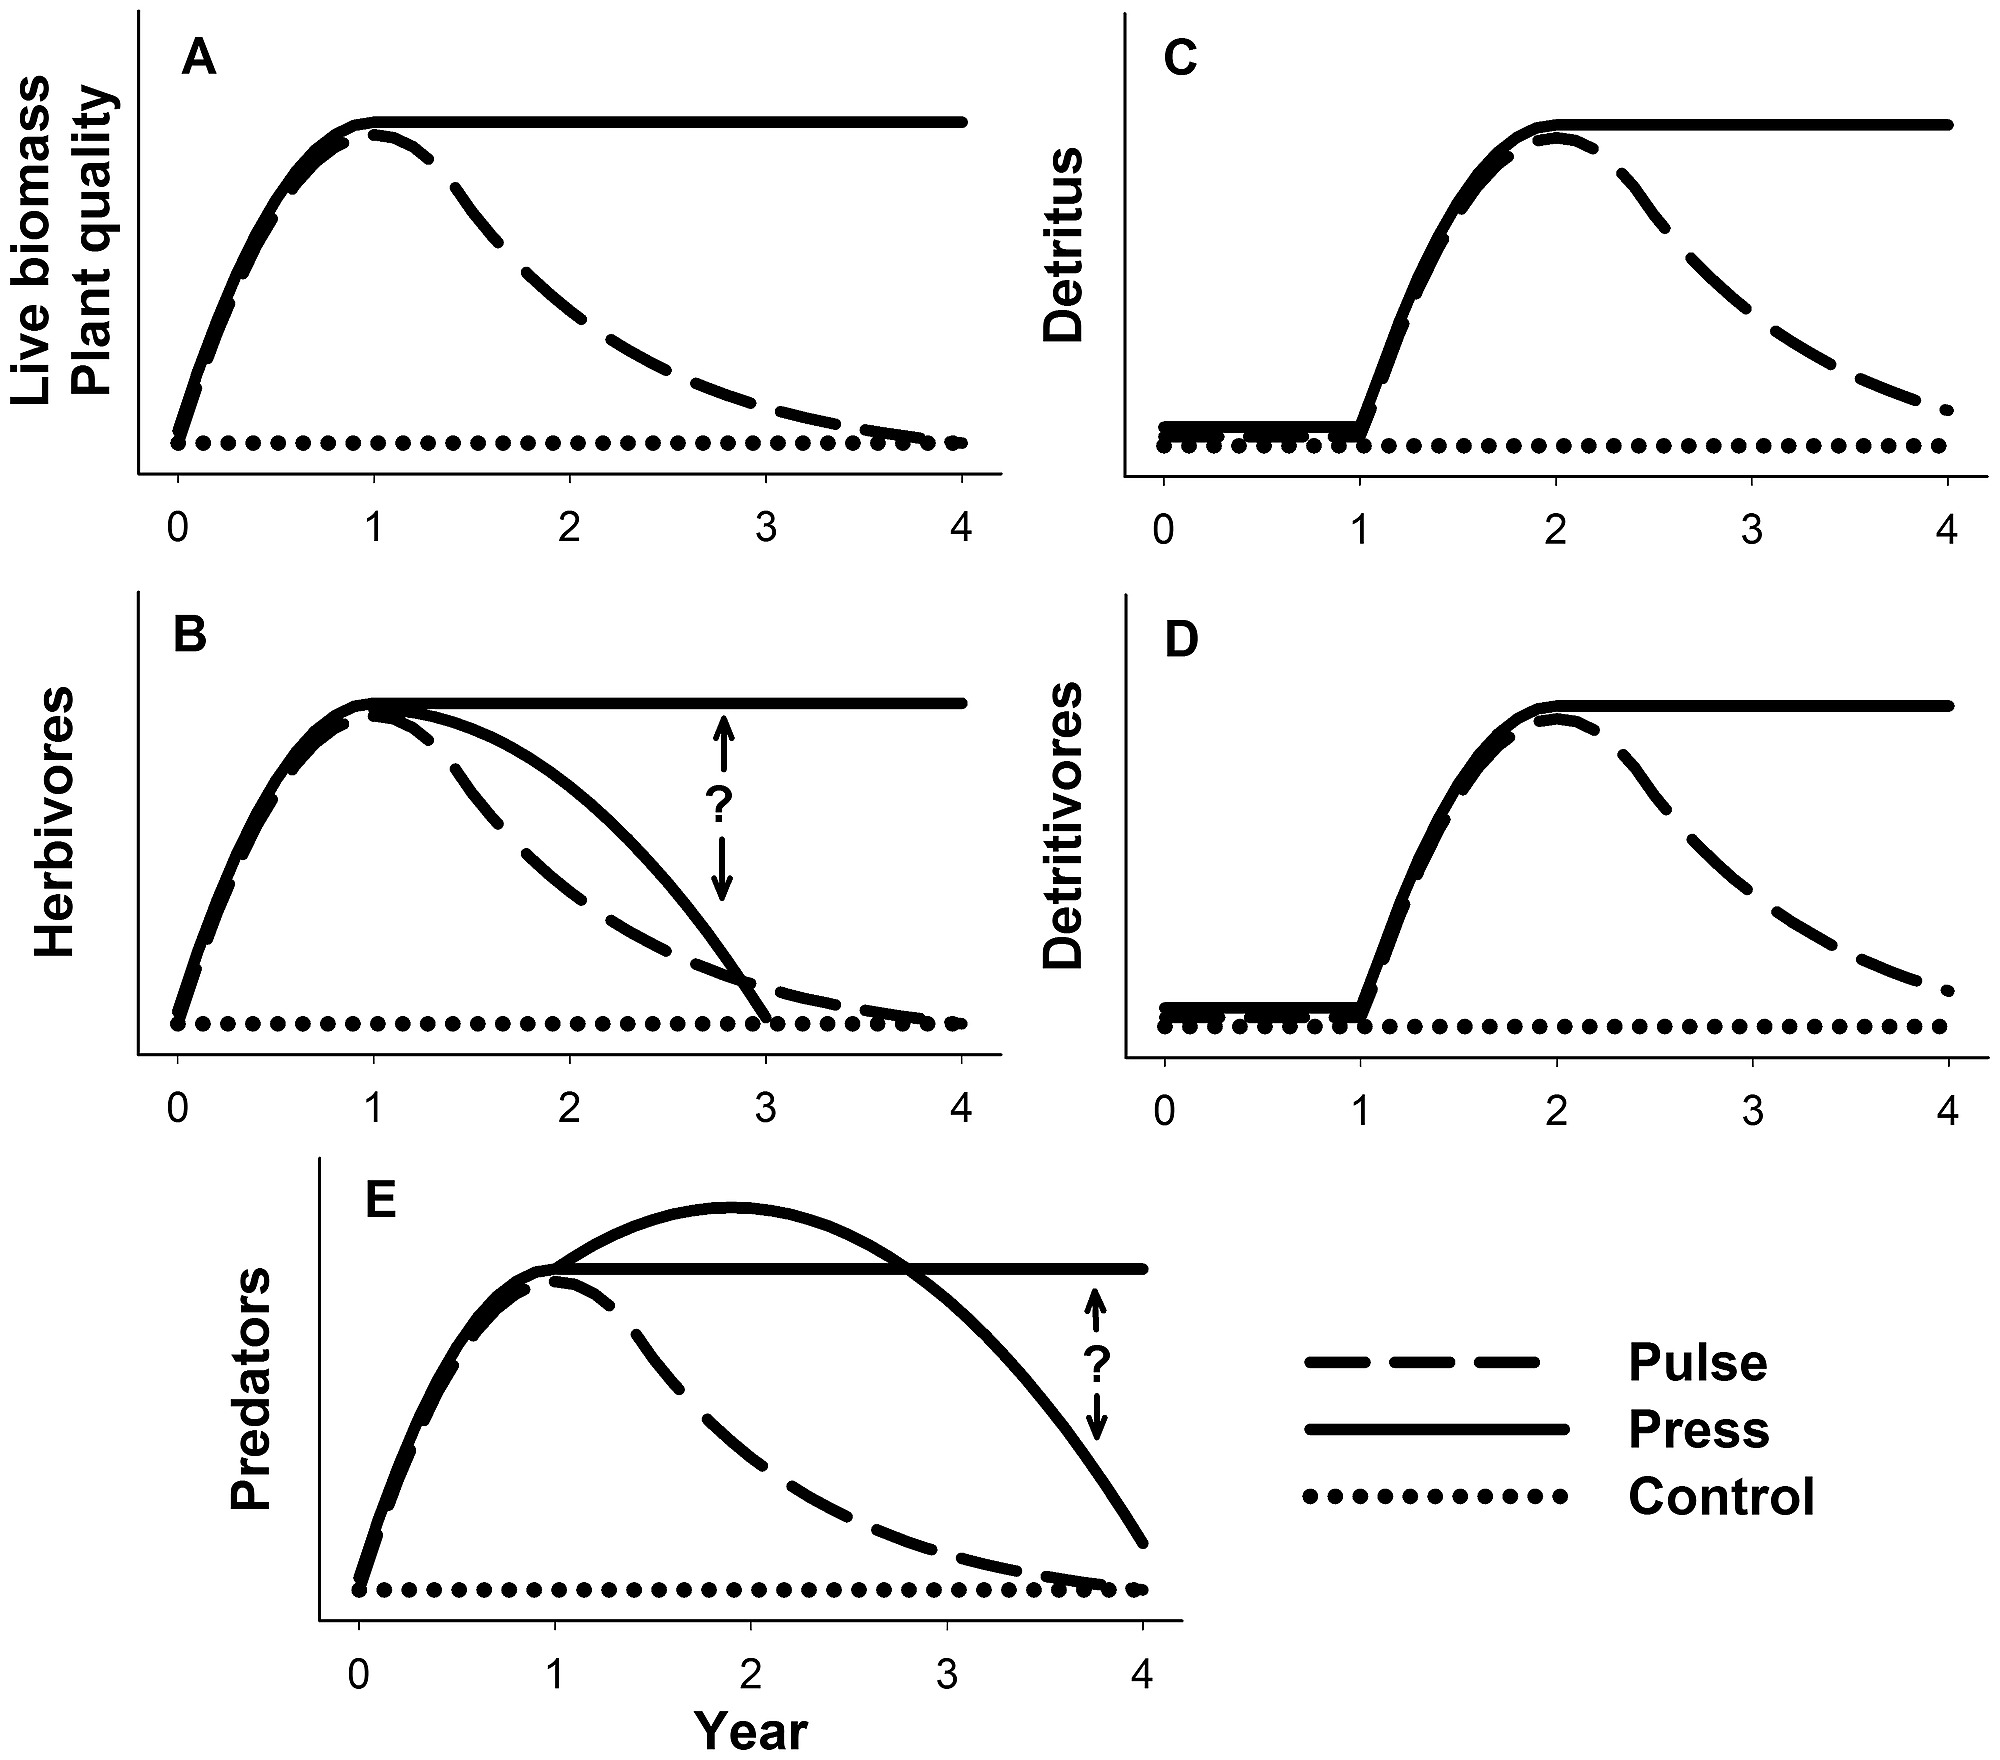 hight resolution of conceptual model of possible inter annual responses of spartina plant parameters and consumer densities to press and pulse nitrogen subsidies